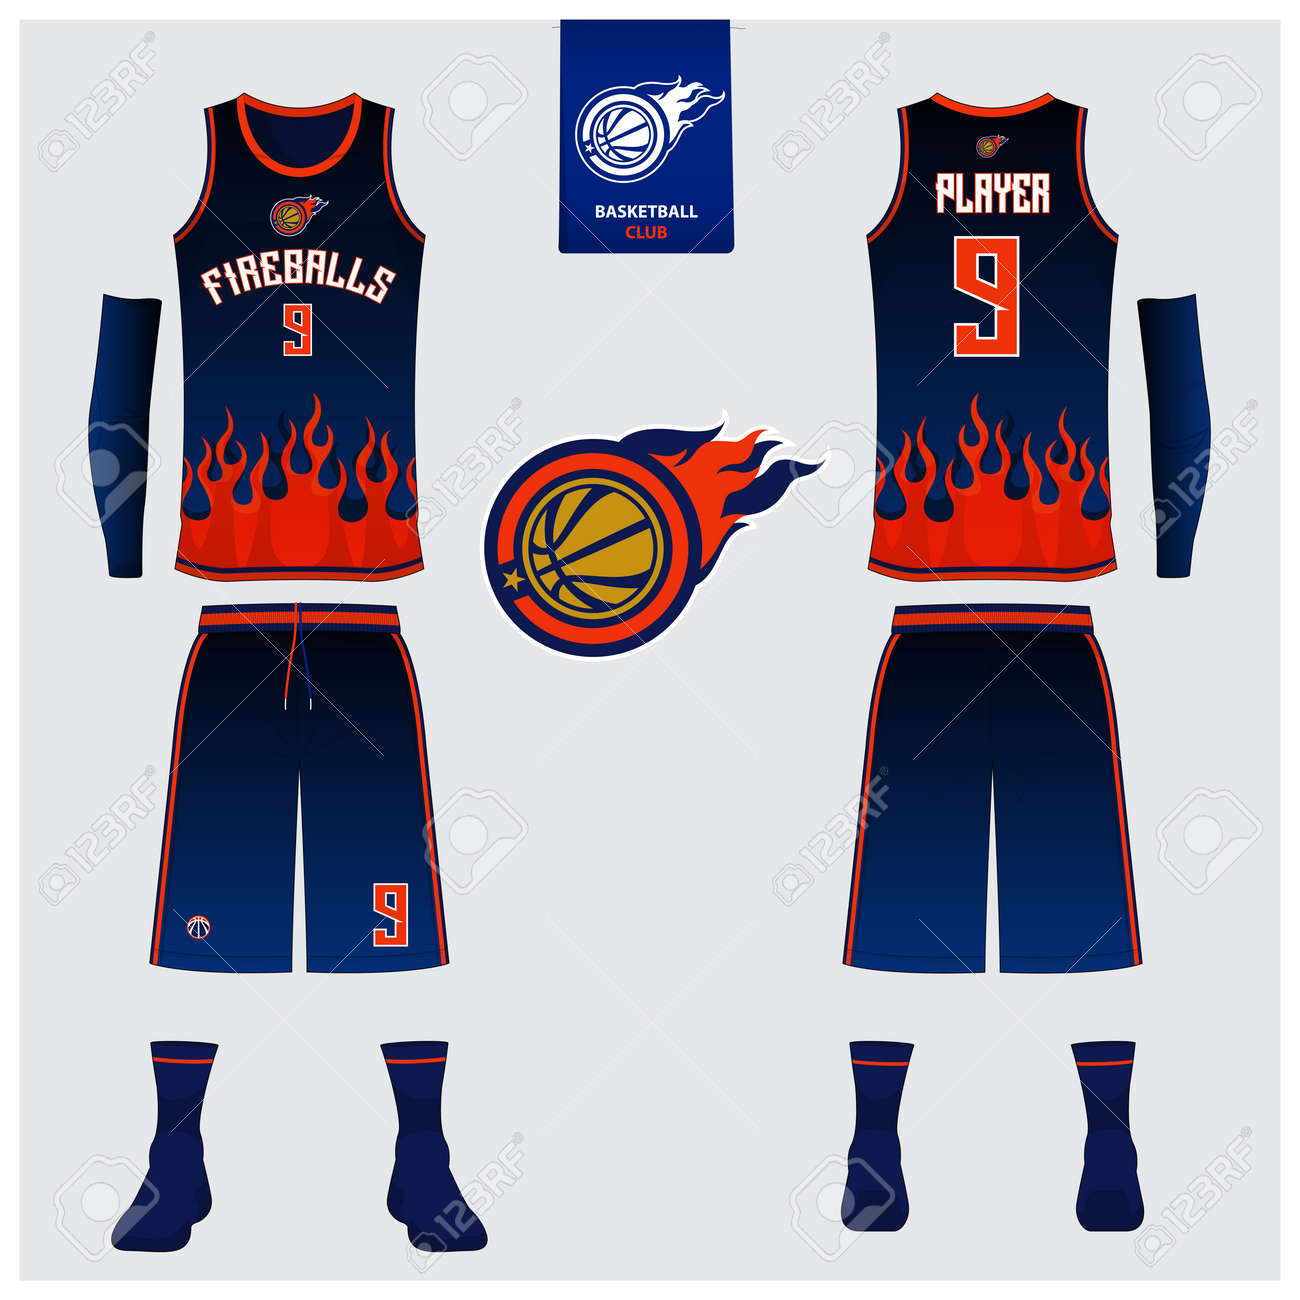 c4a4ab87fe9 Basketball uniform template design. Tank top t-shirt mockup for basketball  jersey. Front